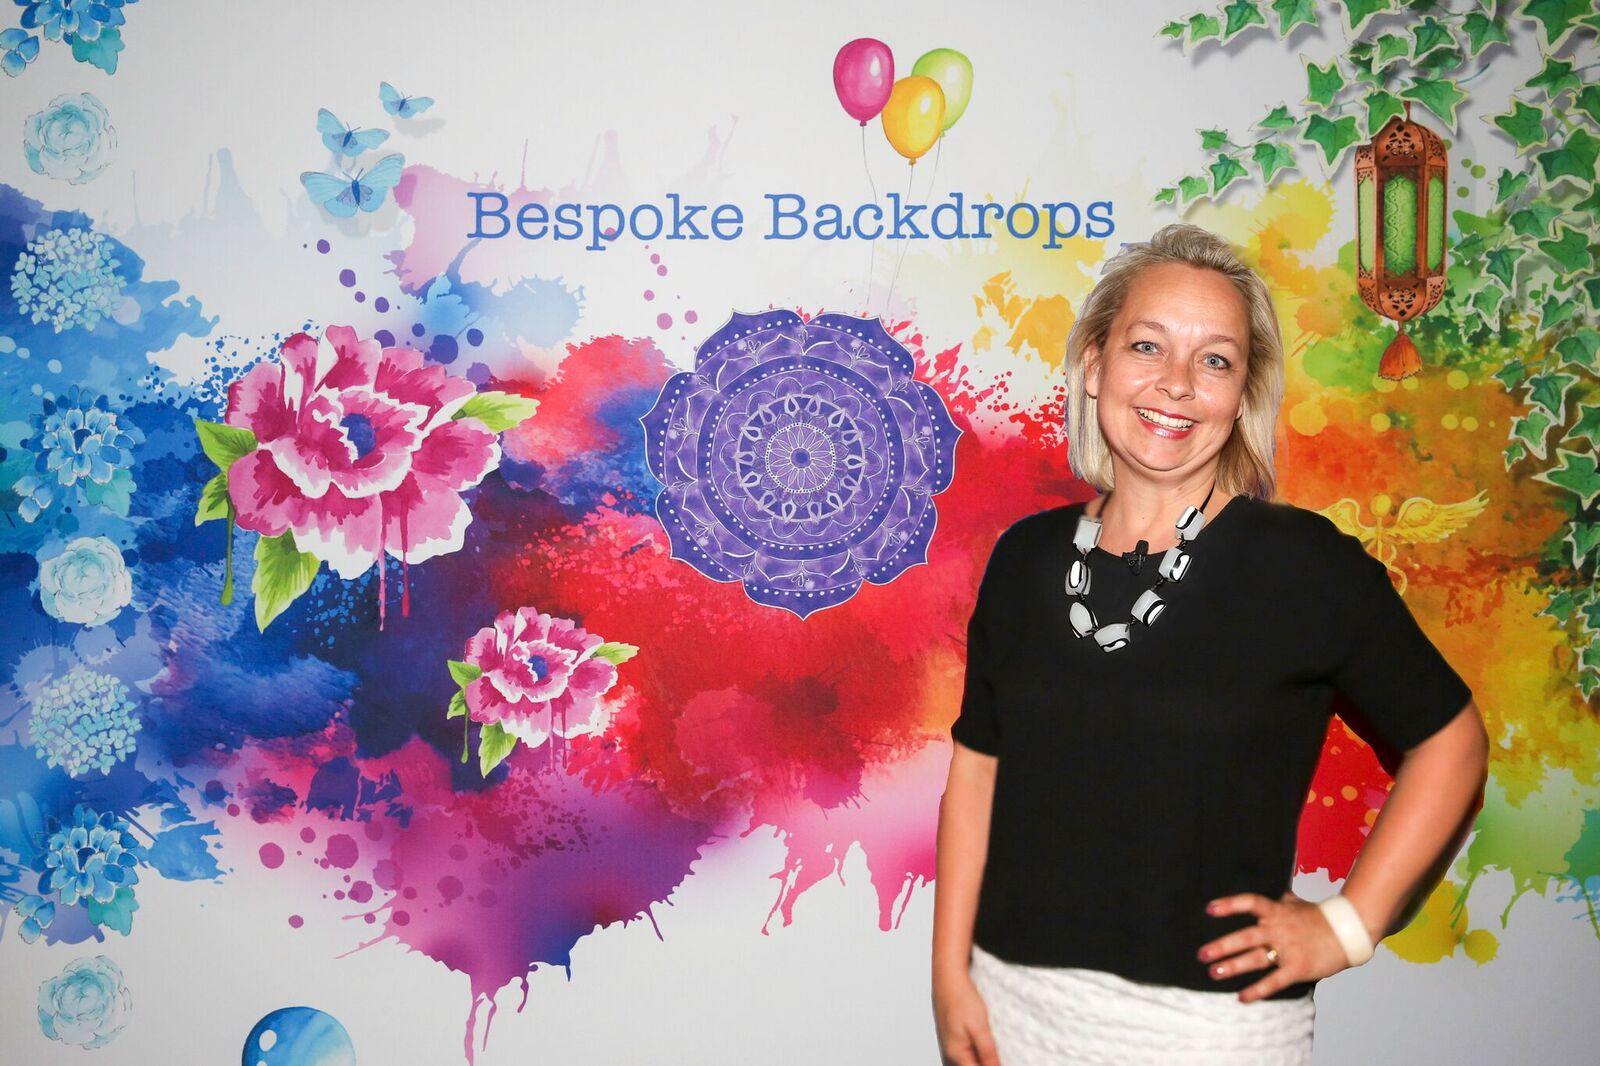 The fabulous Emma Veiga-Malta, artist & founder Bespoke Backdrops, our featured evening presenter who dazzled the room with her story, 'A Creative Journey - From Fabulous to Fear & Back Again'